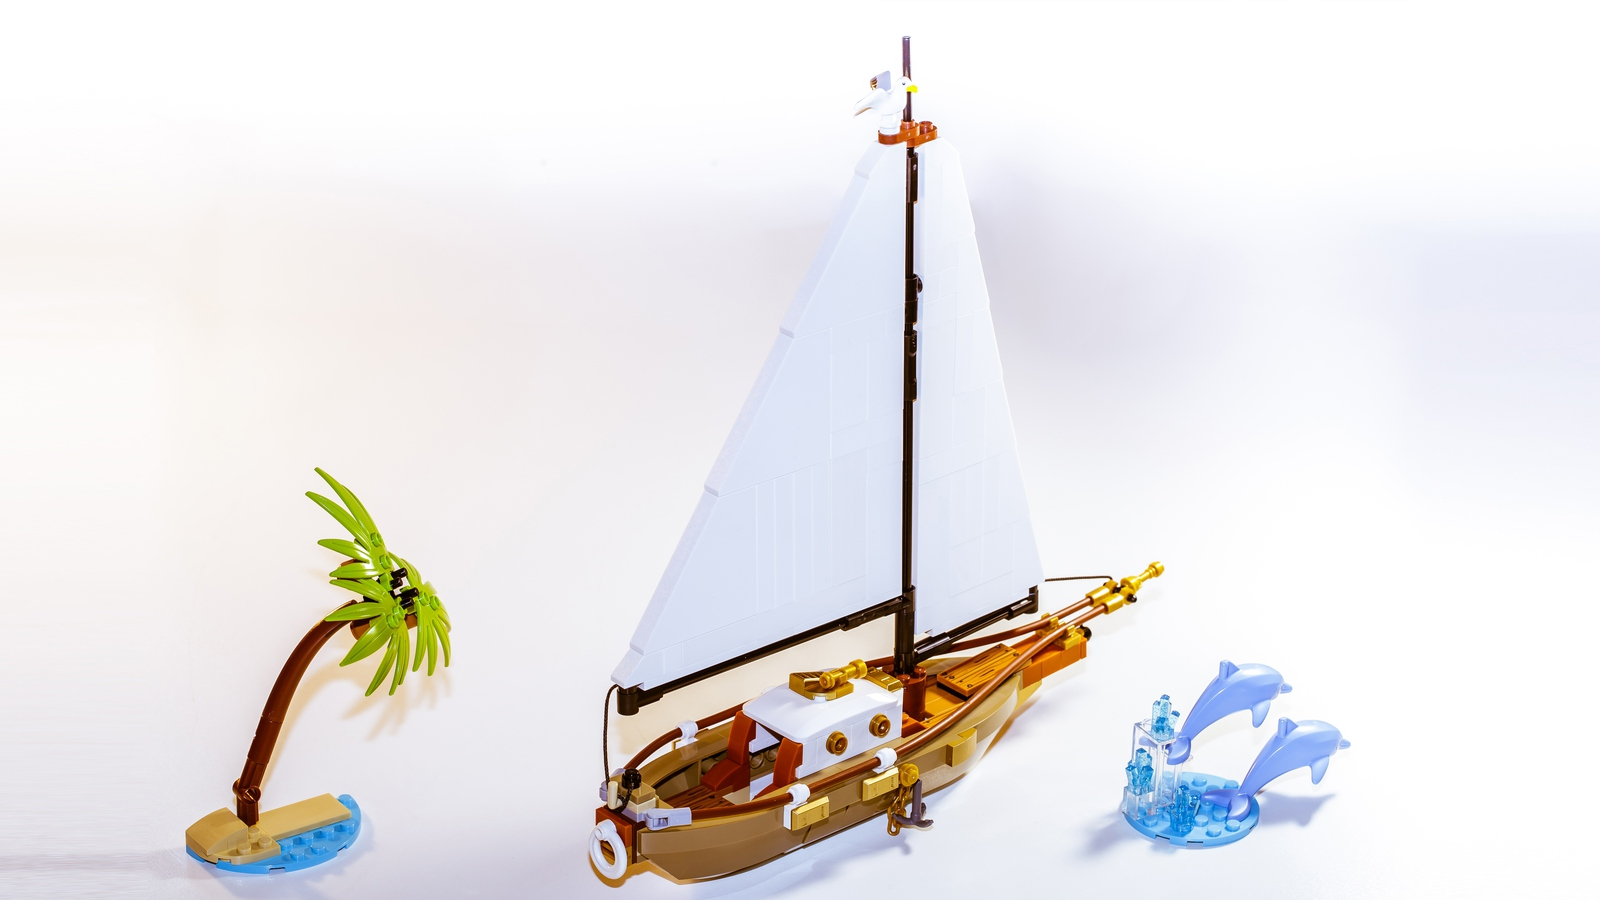 lego-ideas-sailing-ship-adventure-yc-solo-1 zusammengebaut.com